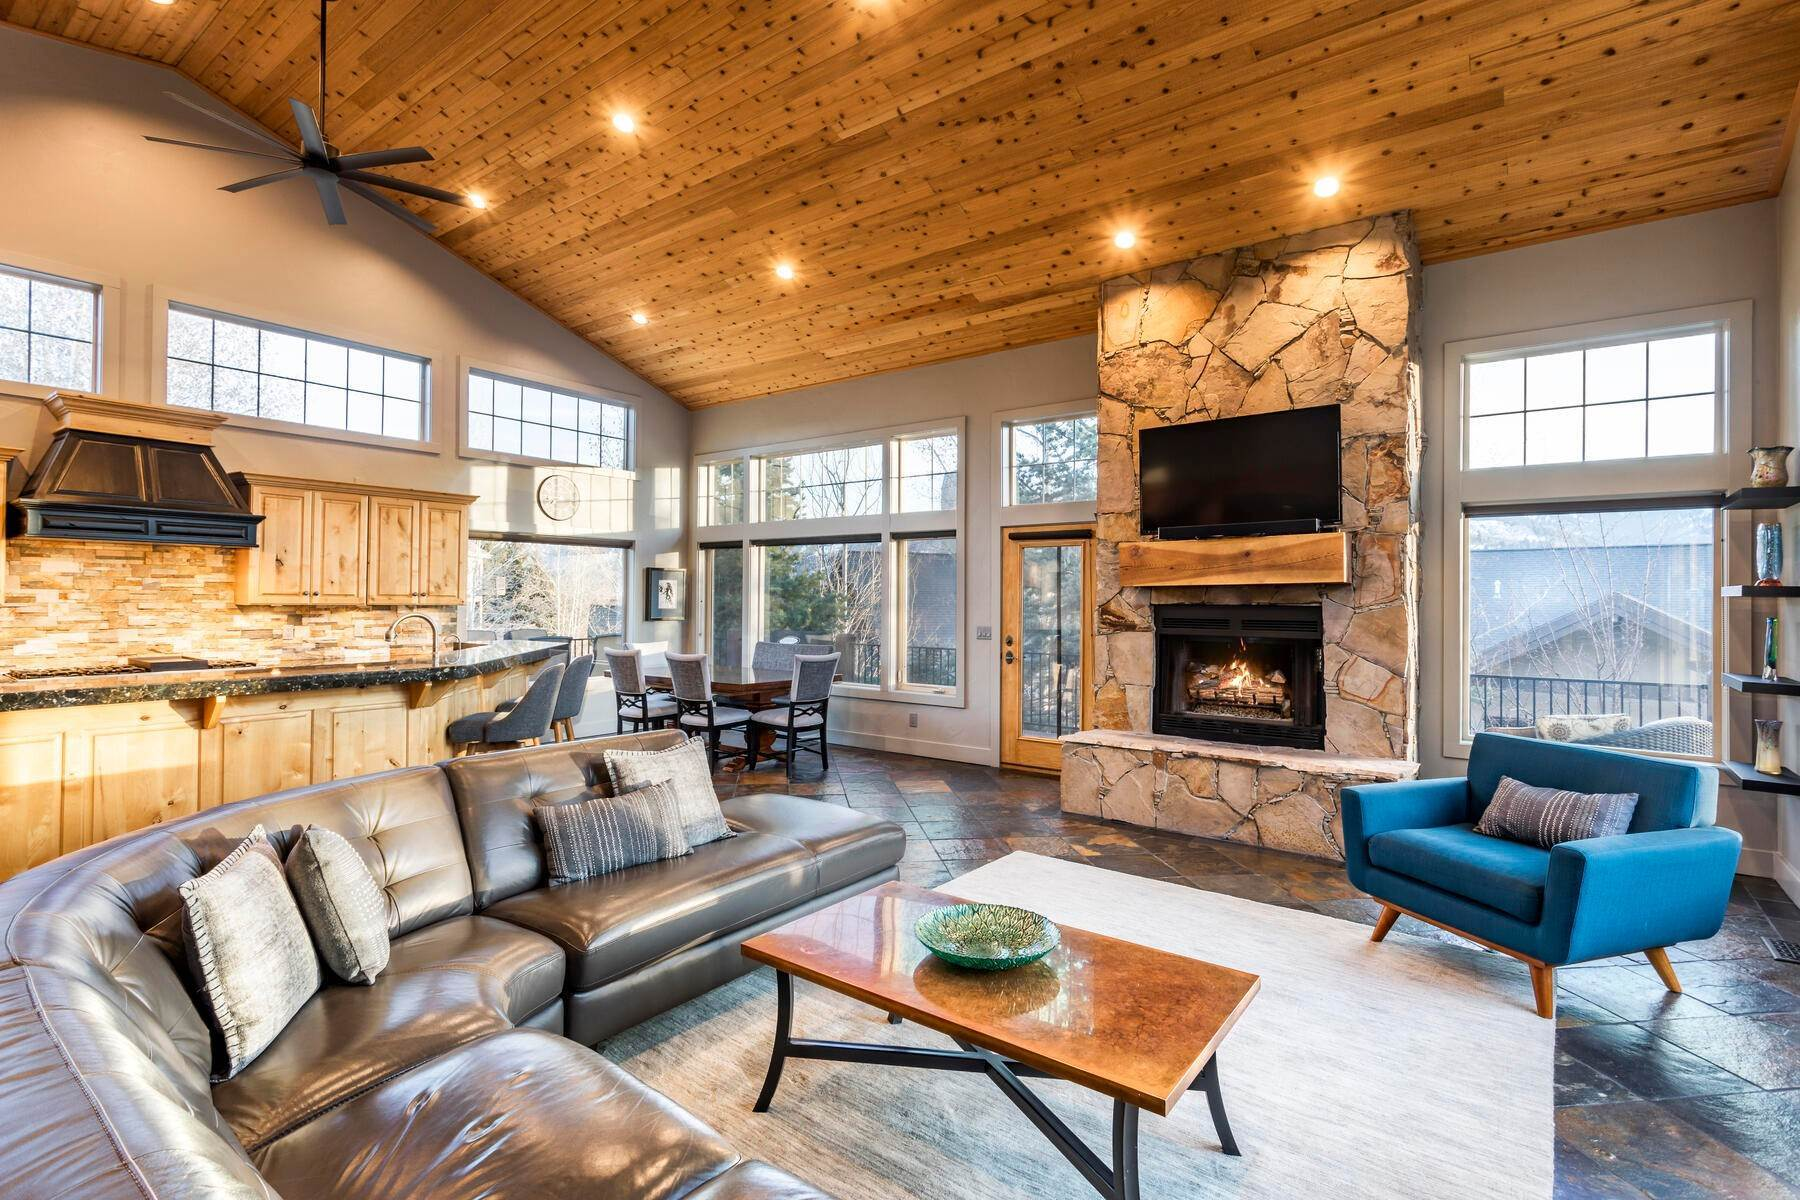 Property for Sale at Open Floor Plan on Cul-de-Sac Featuring Views & Outdoor Space 9270 N Sand Trap Ct Park City, Utah 84098 United States